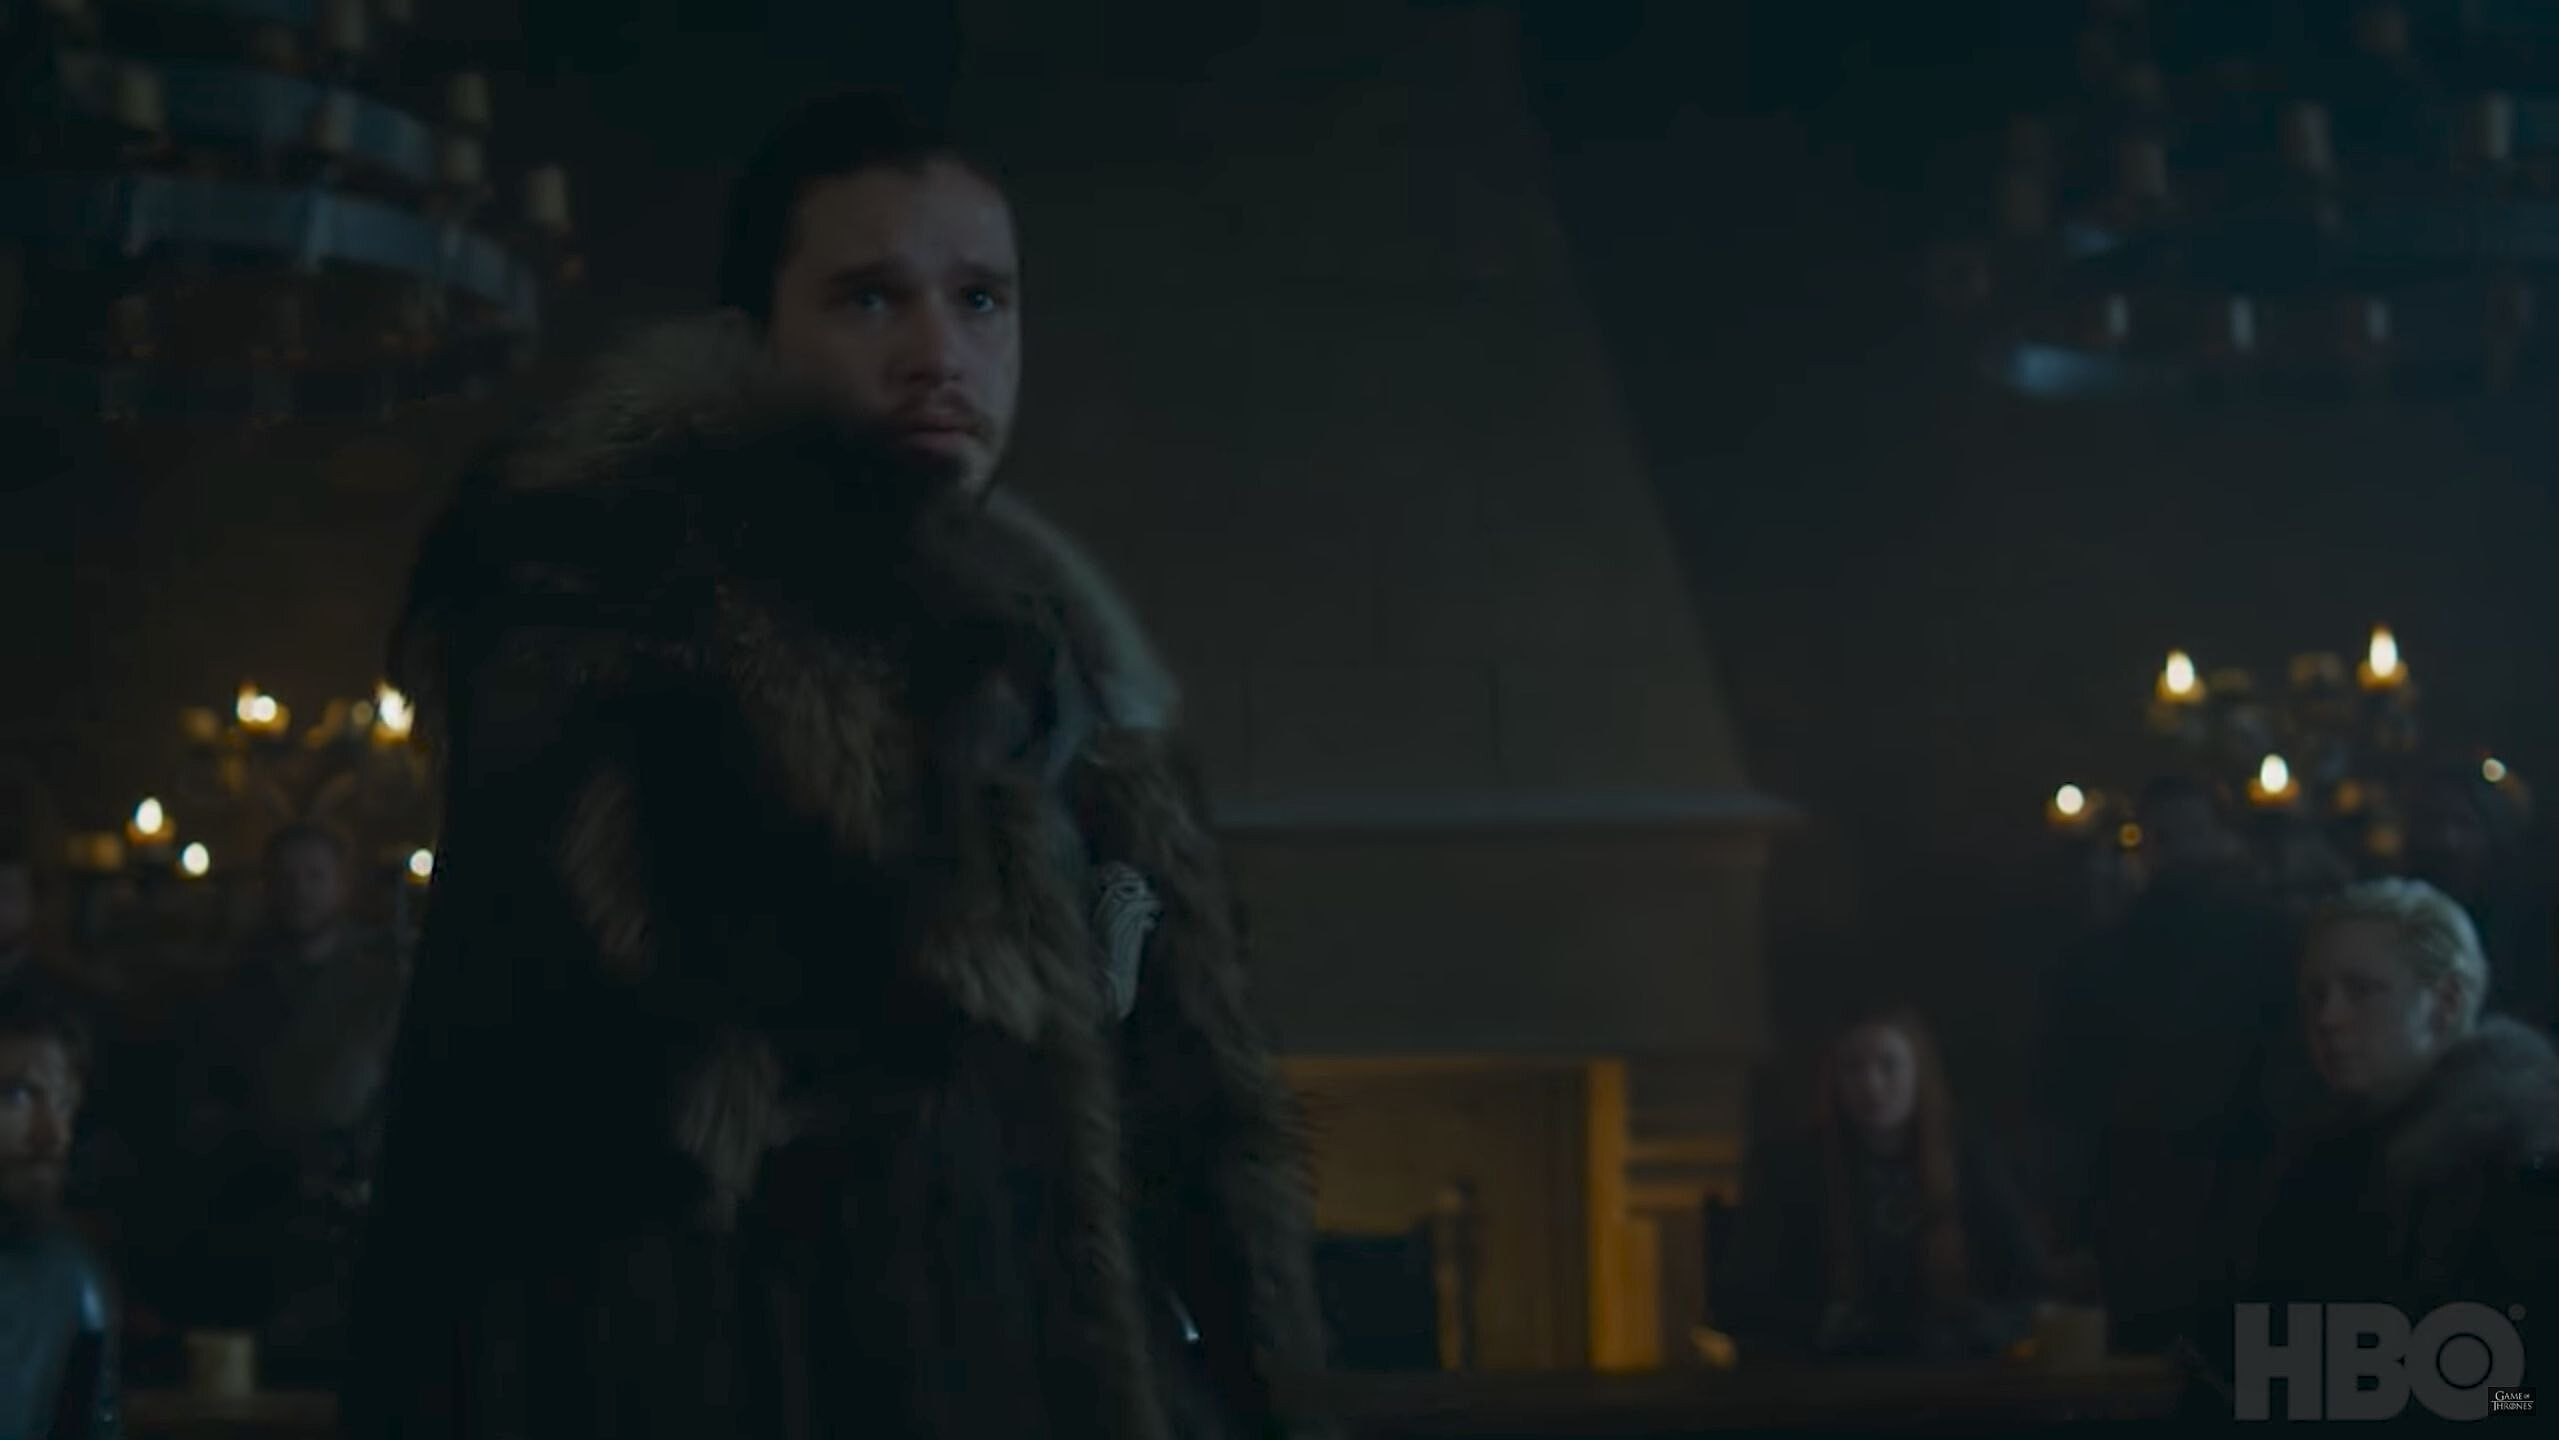 We Get Our First Look At Jon Snow Longclaw His Hip To A Familiar Cry Of King In The North Also Note Brienne On Right Side Frame